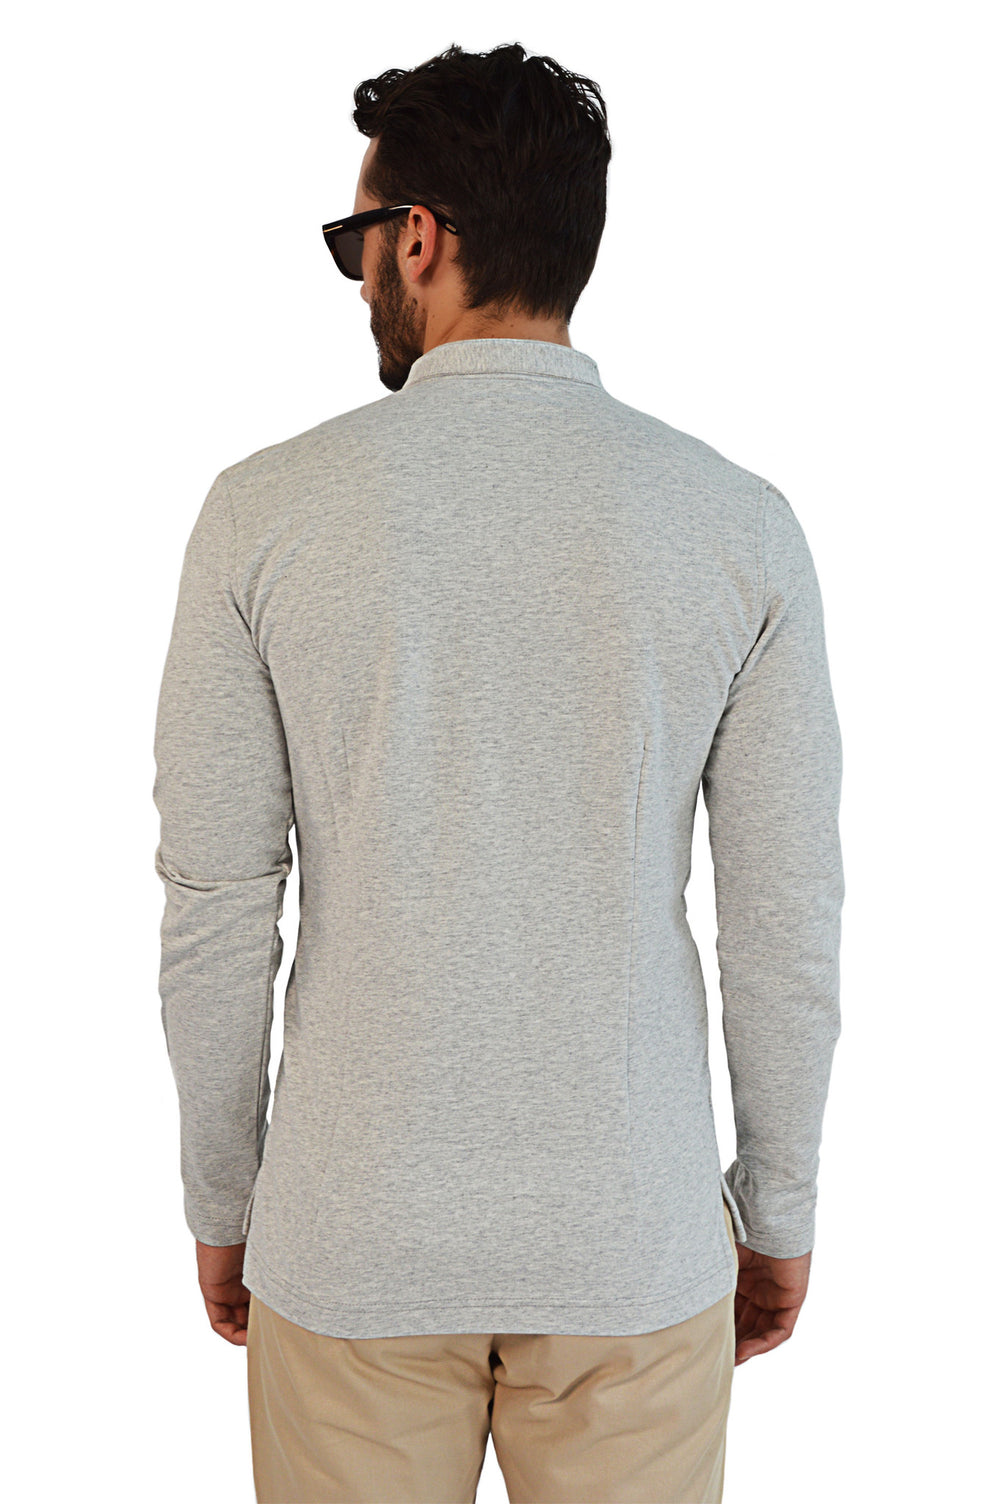 Back view french terry tailored henley